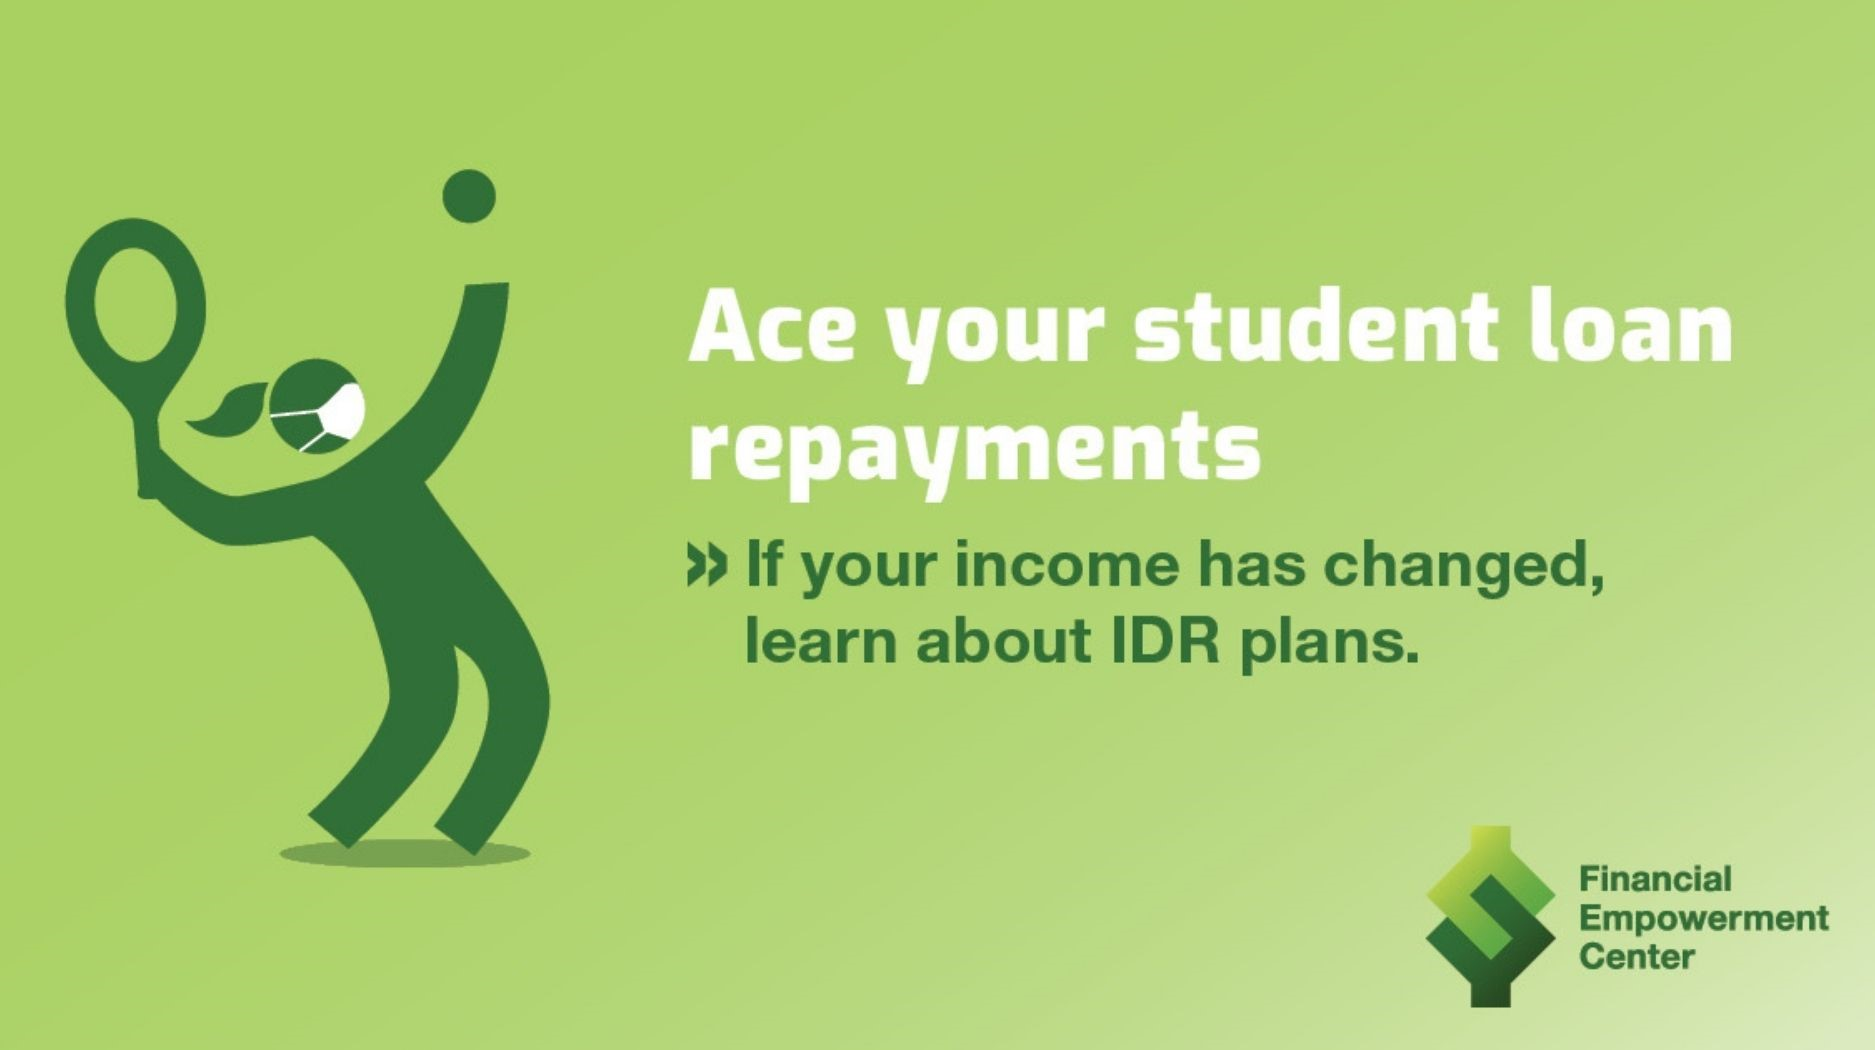 Financial Empowerment Center ad campaign, text overlay reads Ace your student loan repayments. If your income has changed, learn about IDR plans. Image of stick figure with mask on playing tennis